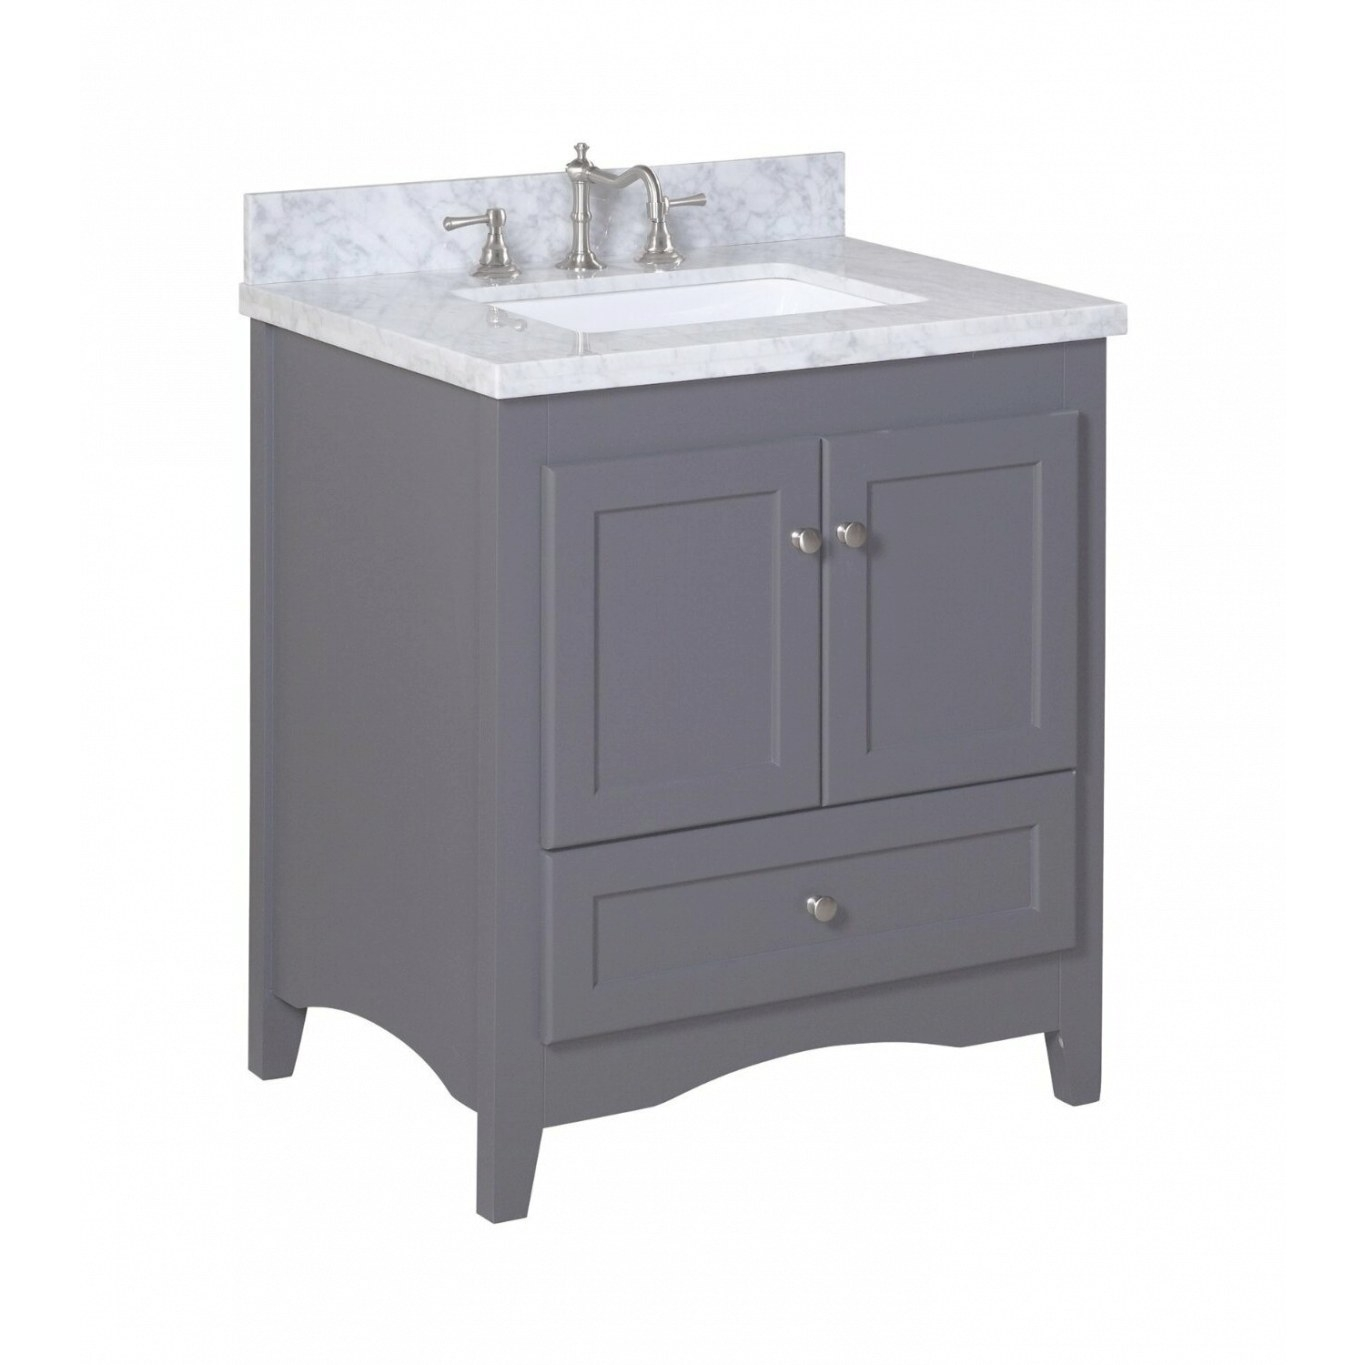 "Kbc Abbey 30"" Single Bathroom Vanity Set & Reviews 